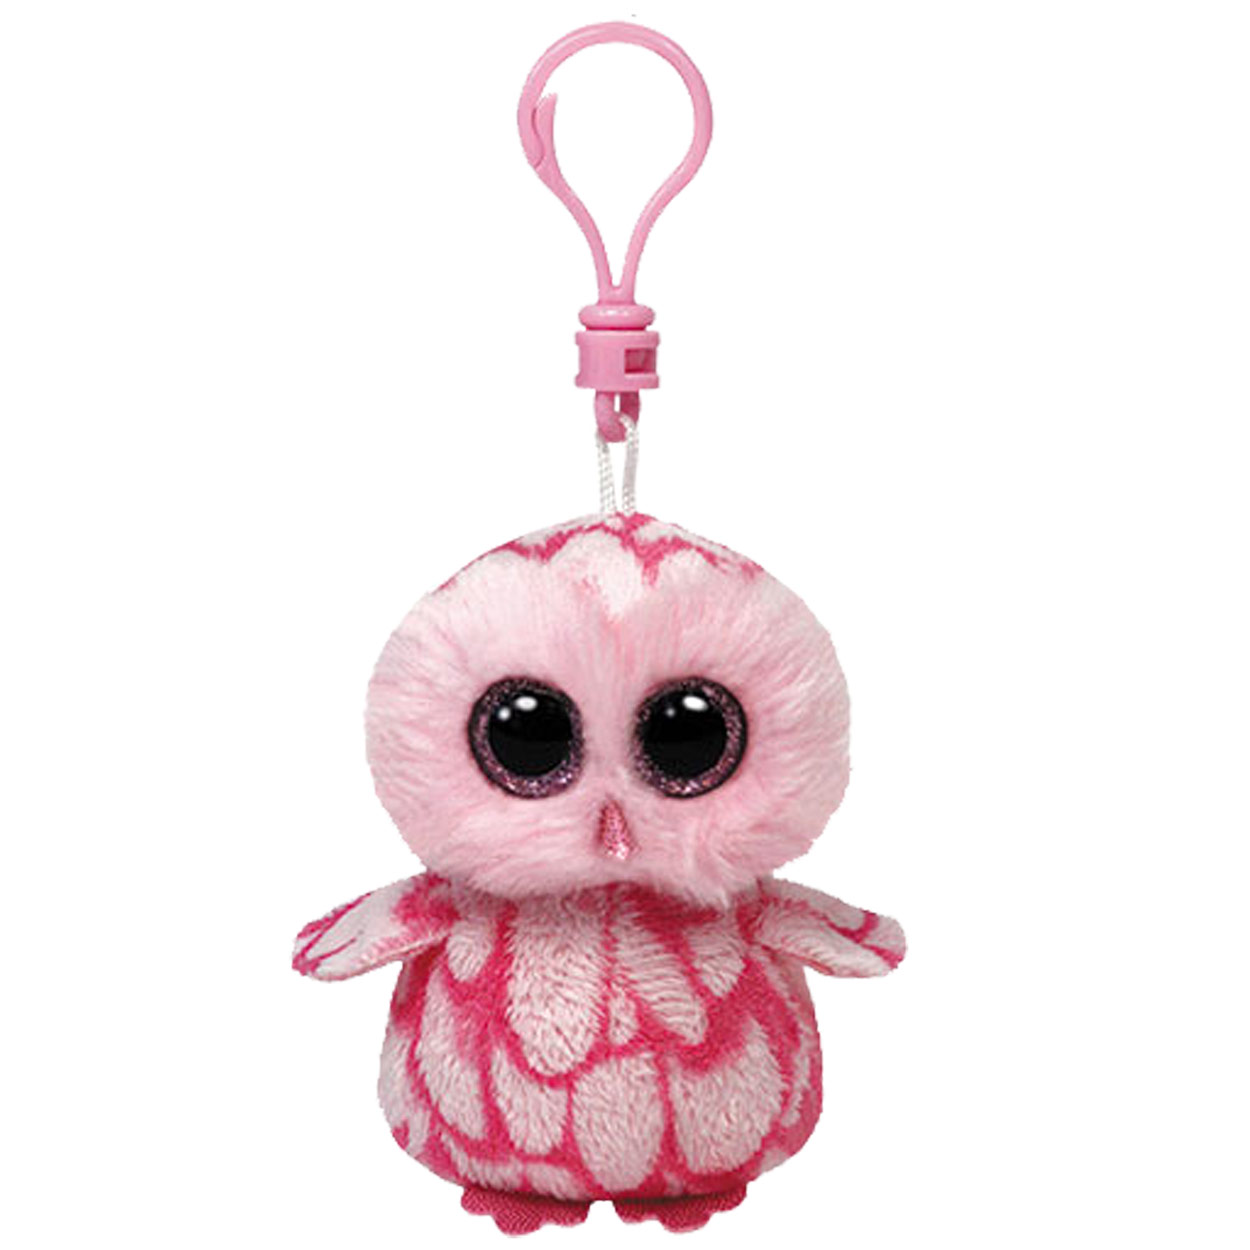 Ty Beanie Boo Sleutelhanger Uil - Pinky